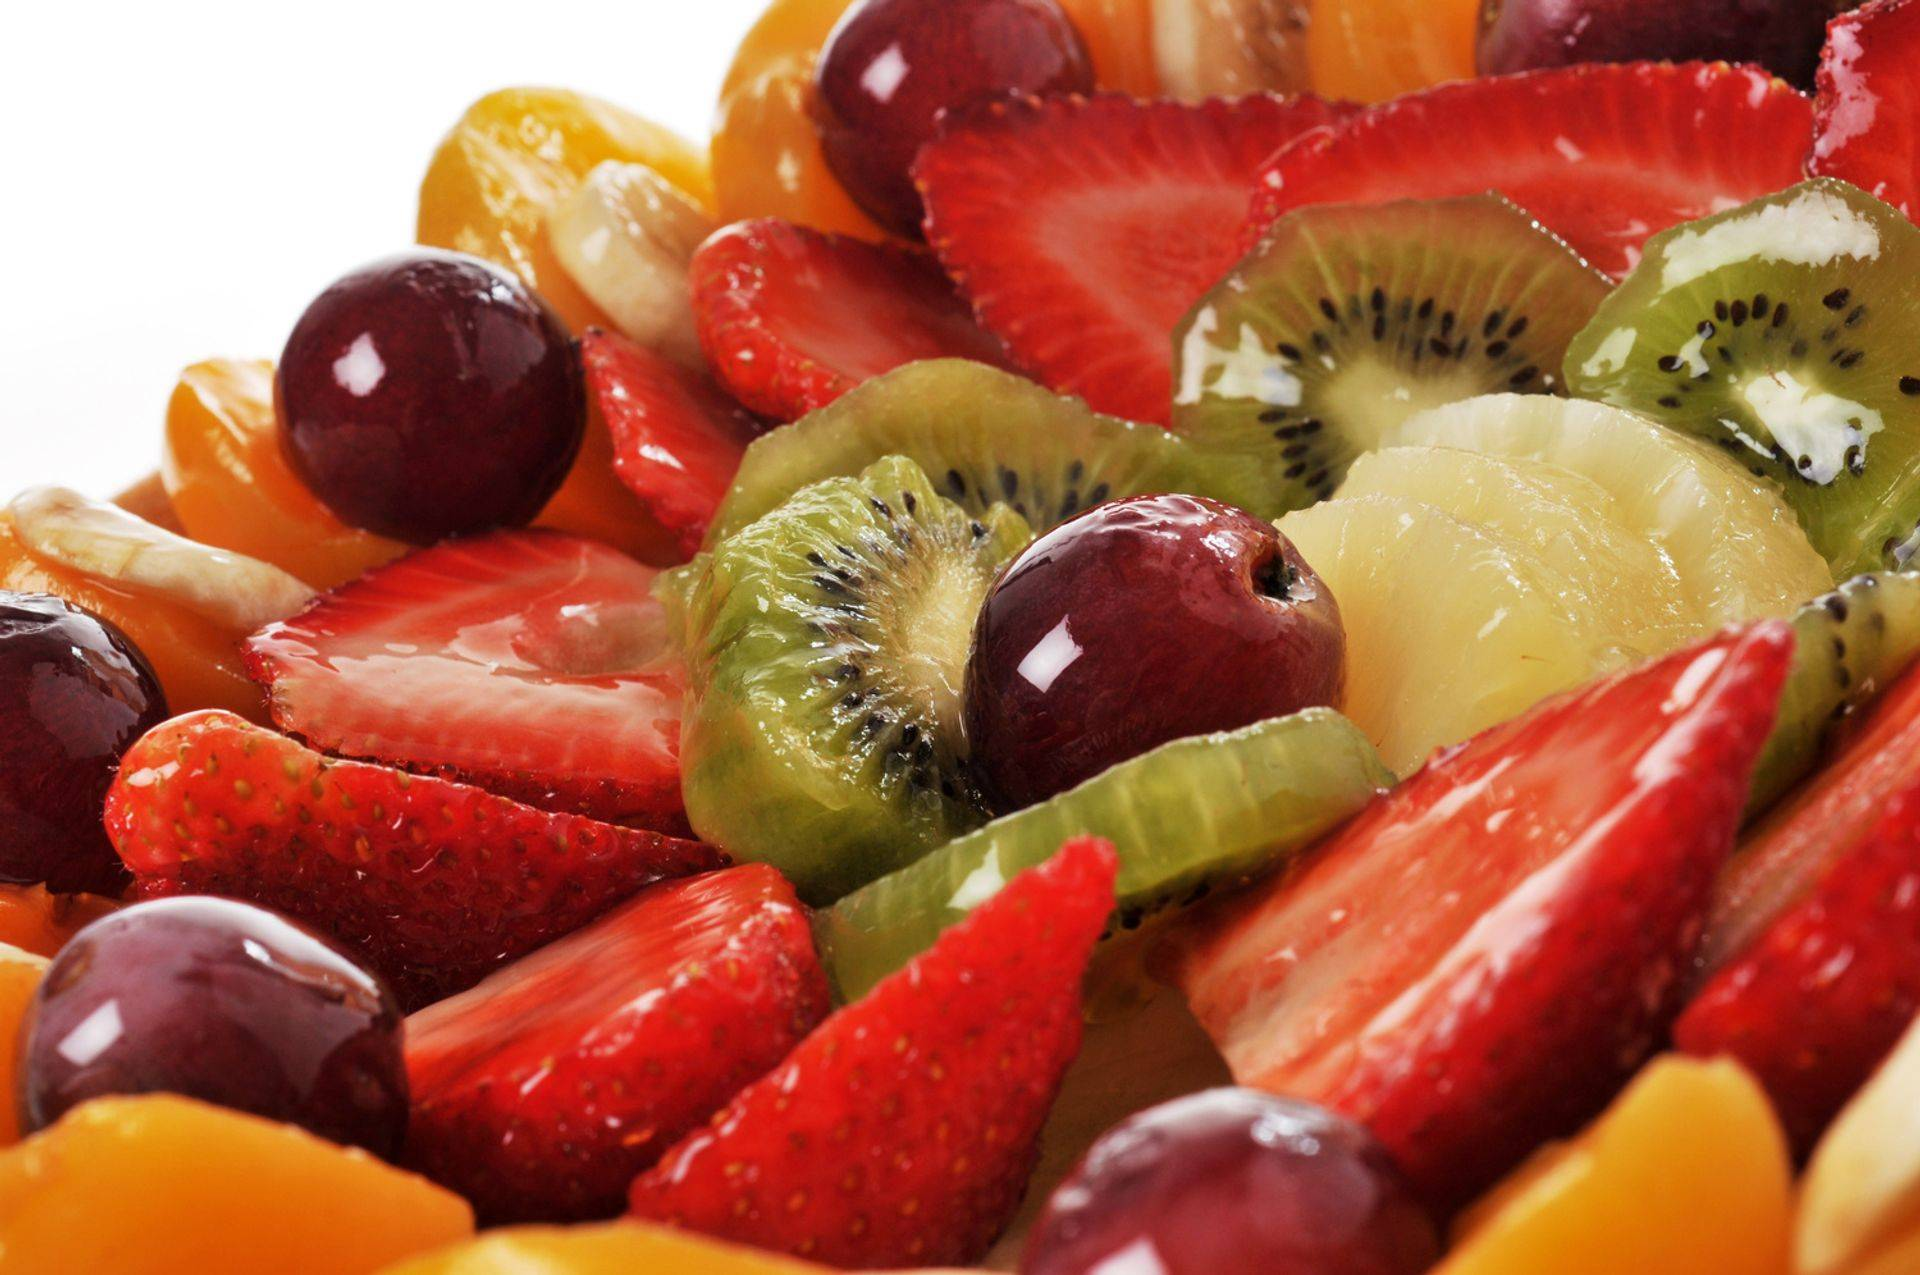 We offer nutritional consulting and promote eating well.